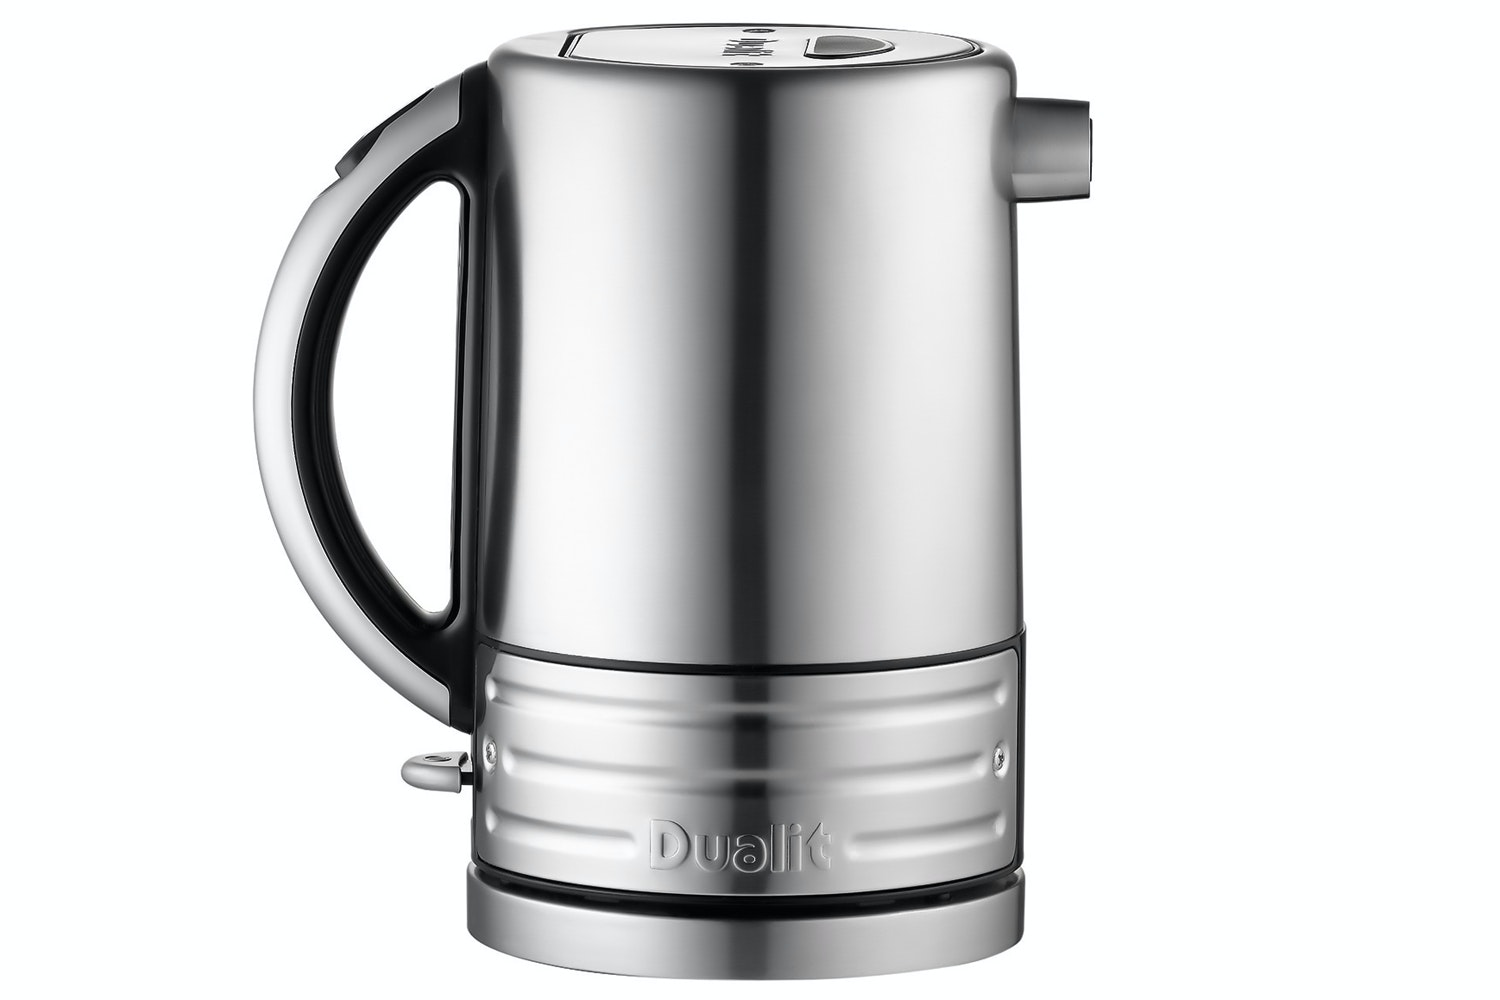 Dualit 1.5L Architect Kettle | Stainless Steel